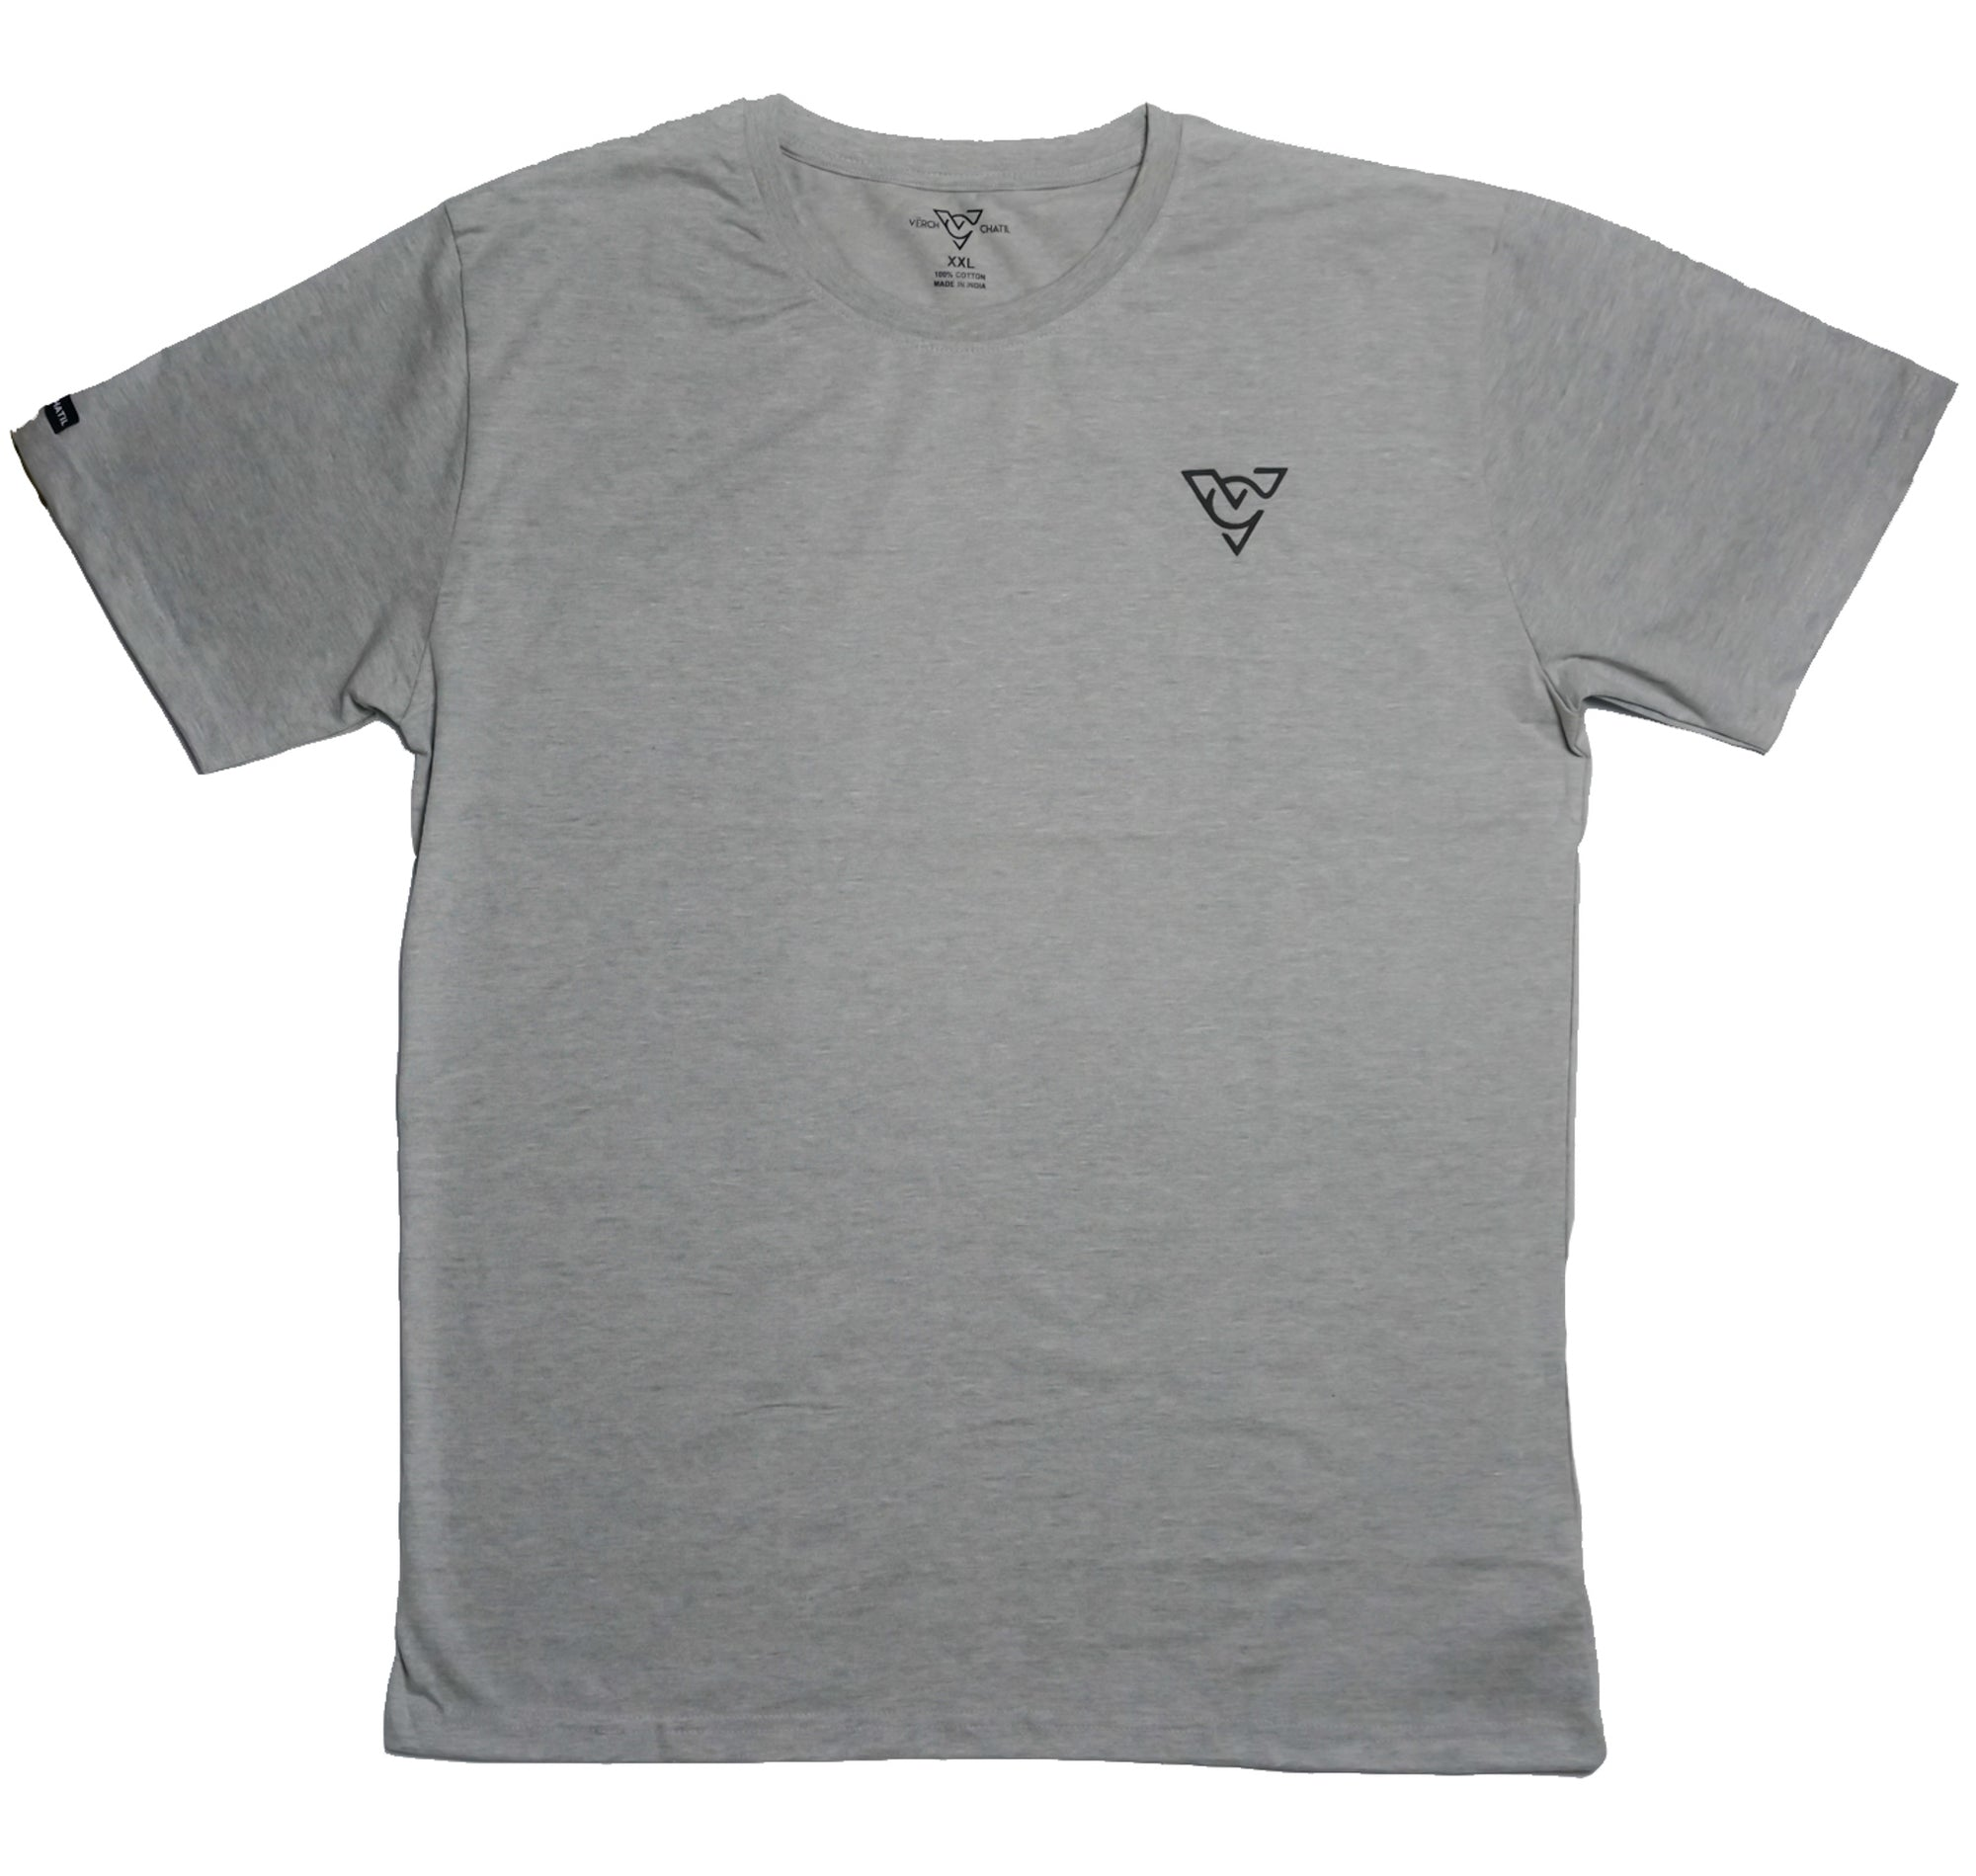 Verch Grey Short Sleeve Tshirt